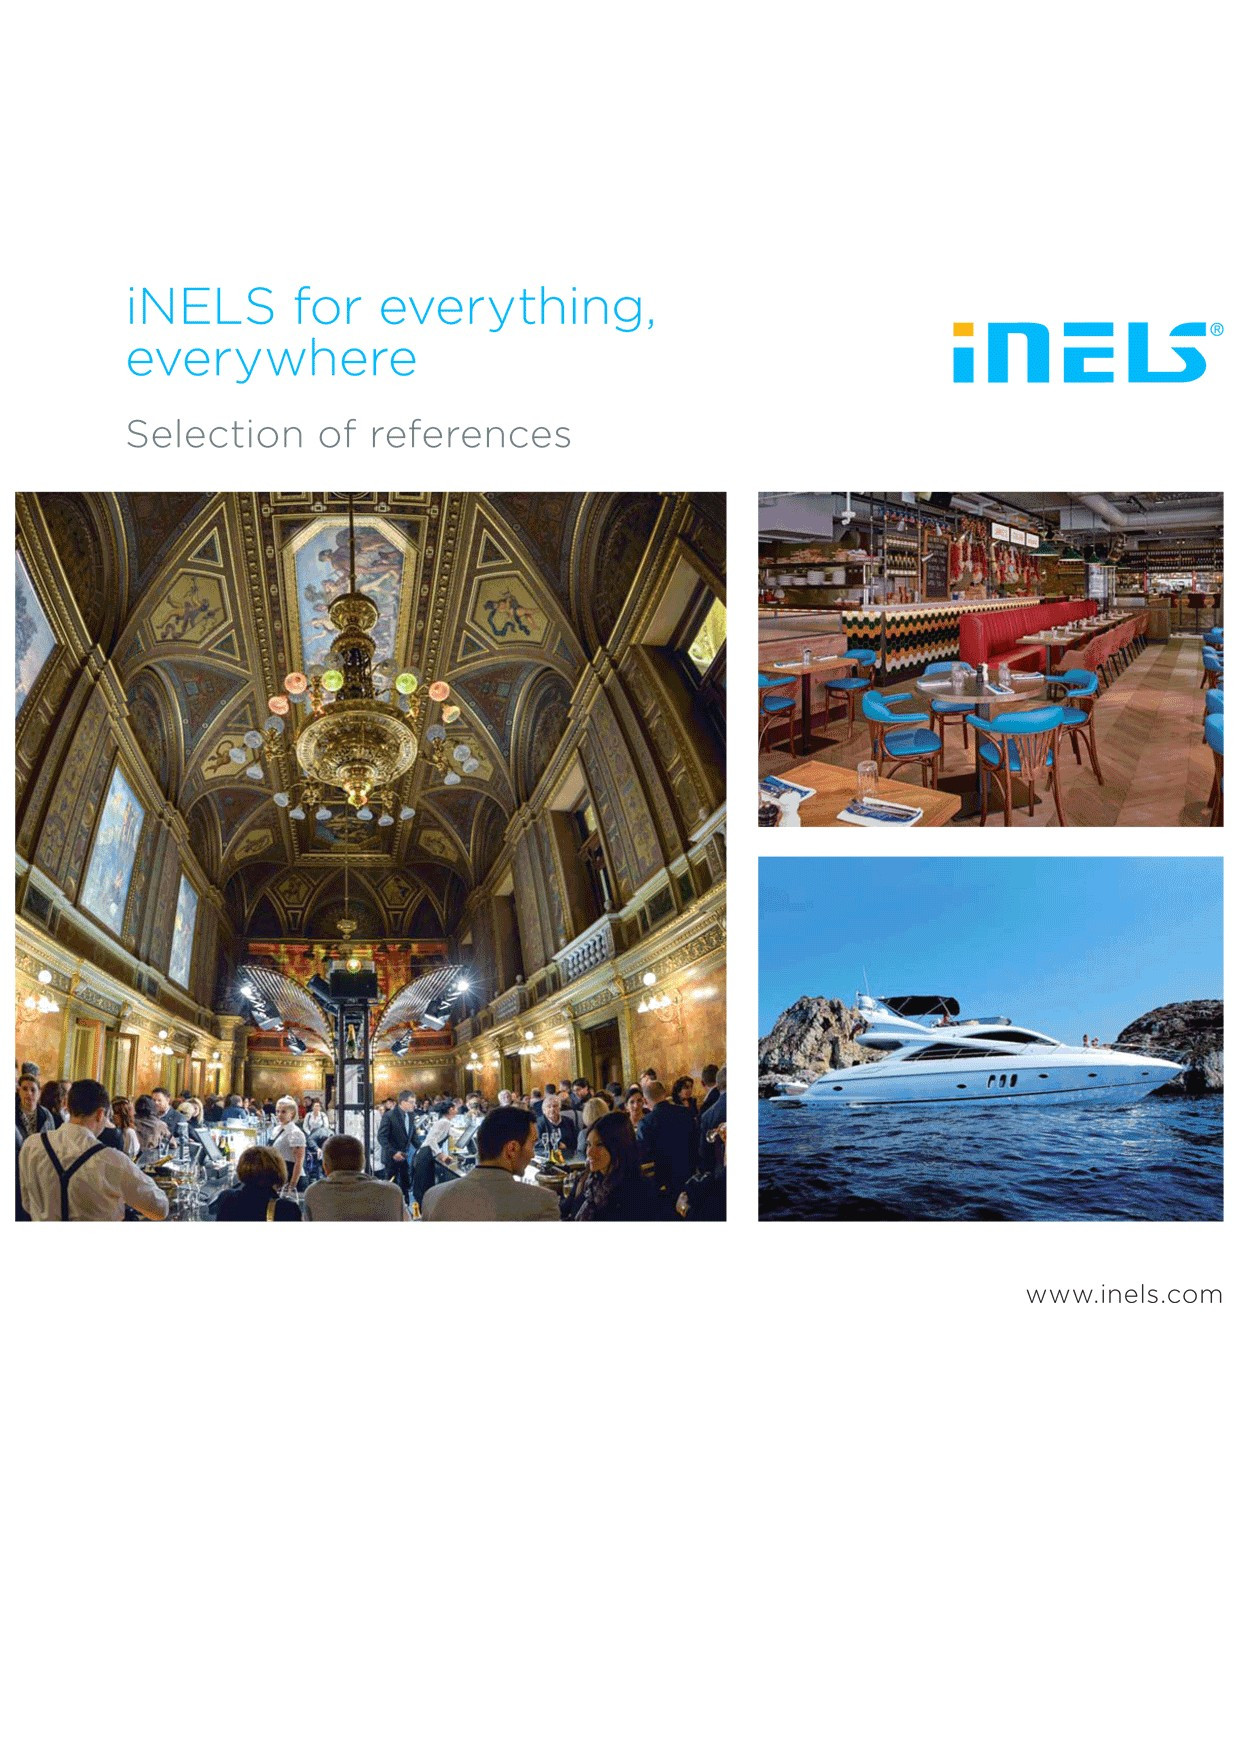 iNELS for everything, everywhere preview